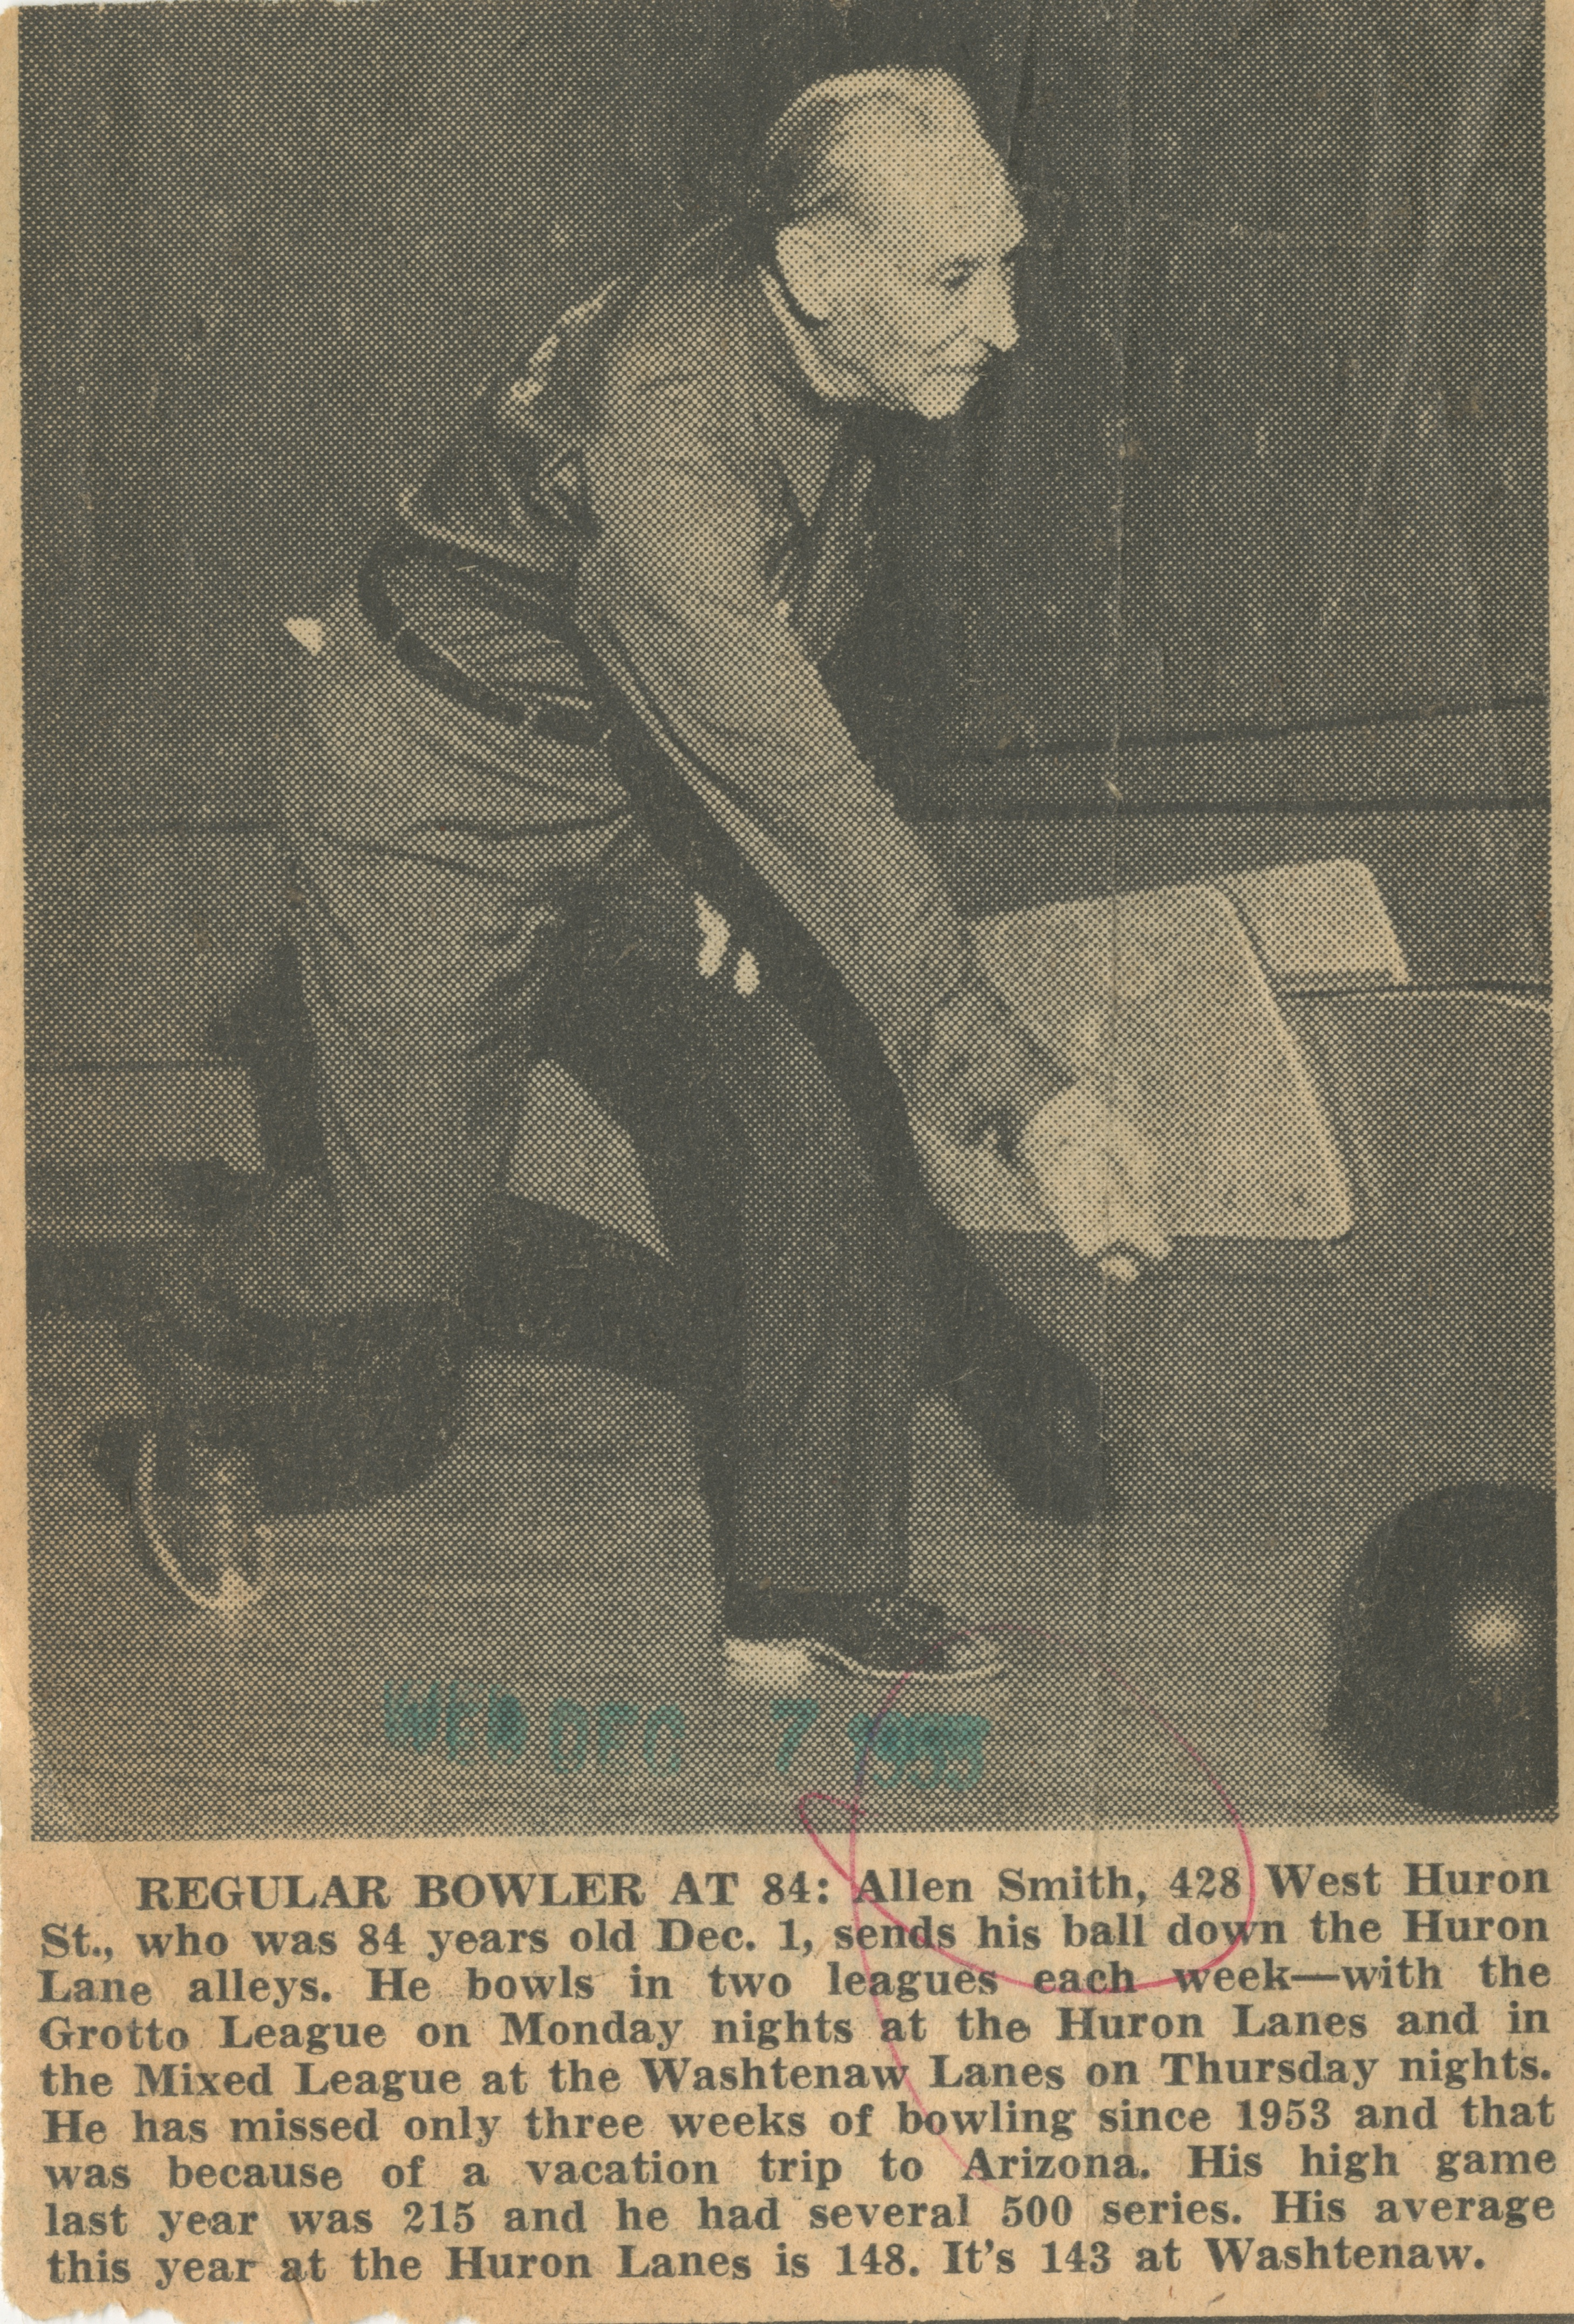 Regular Bowler At 84 image